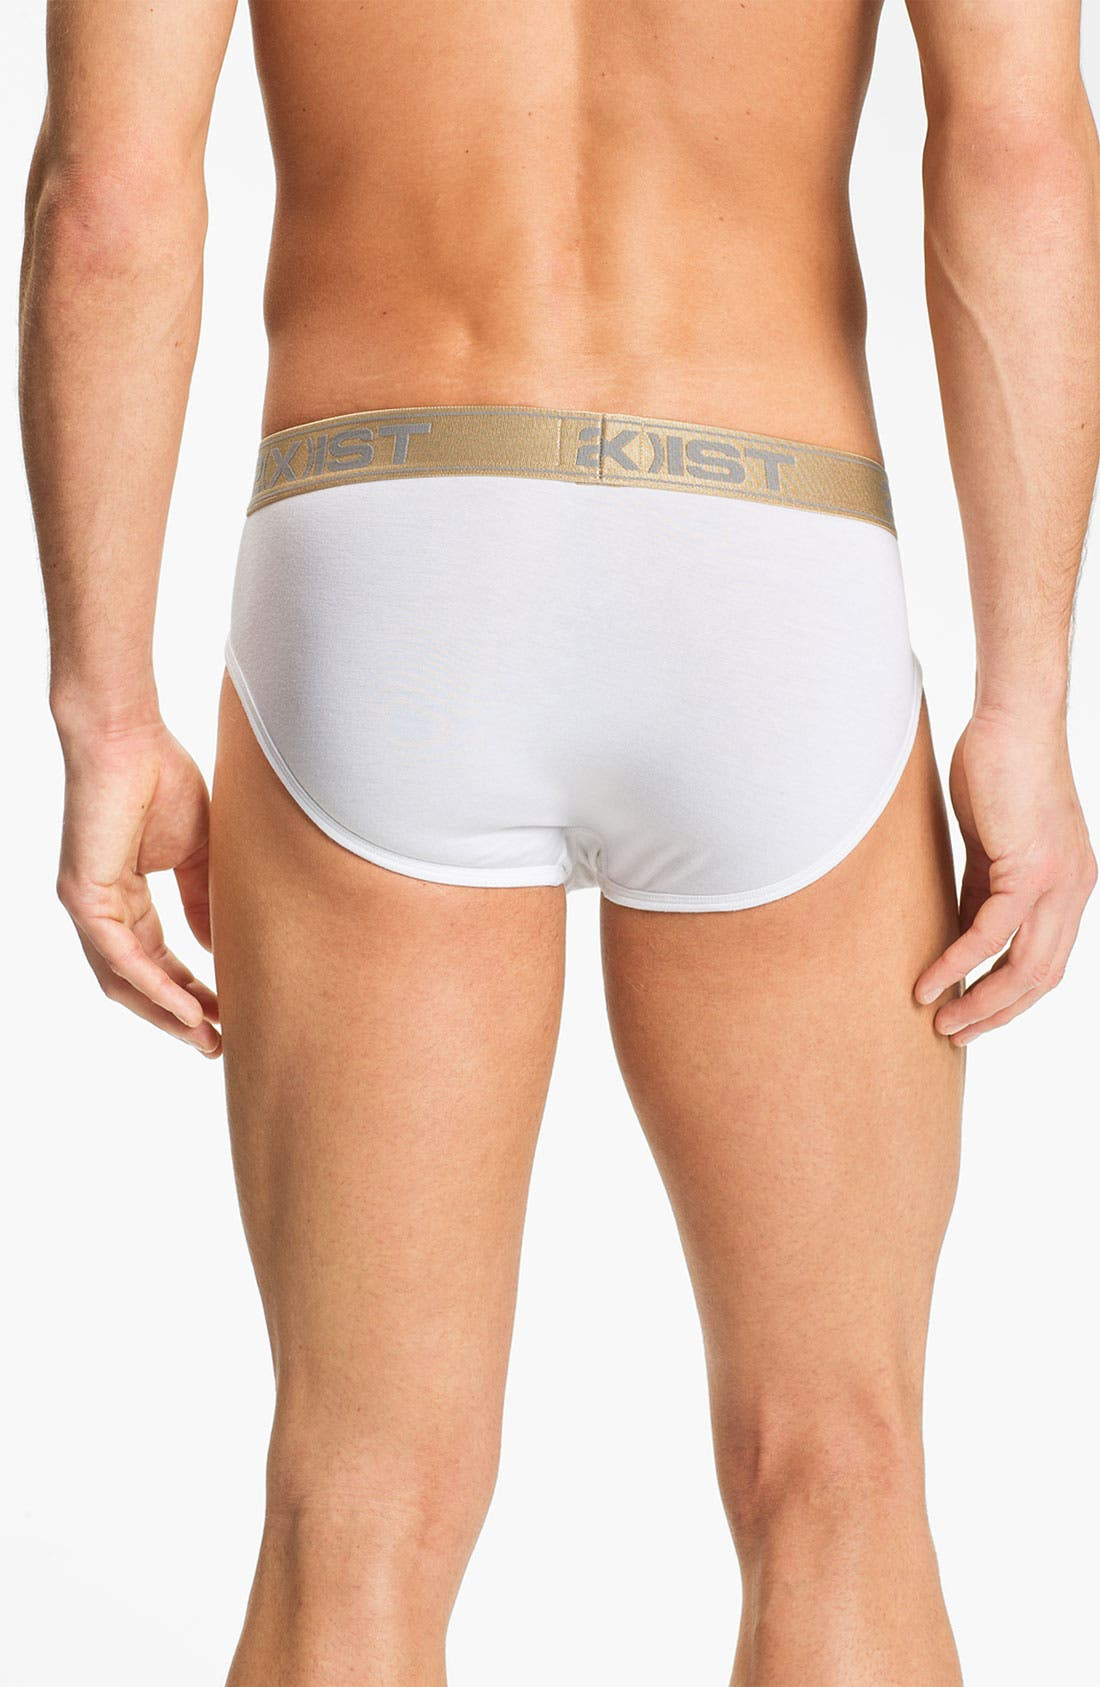 Alternate Image 2  - 2(x)ist 'Gold' Contour Pouch Briefs